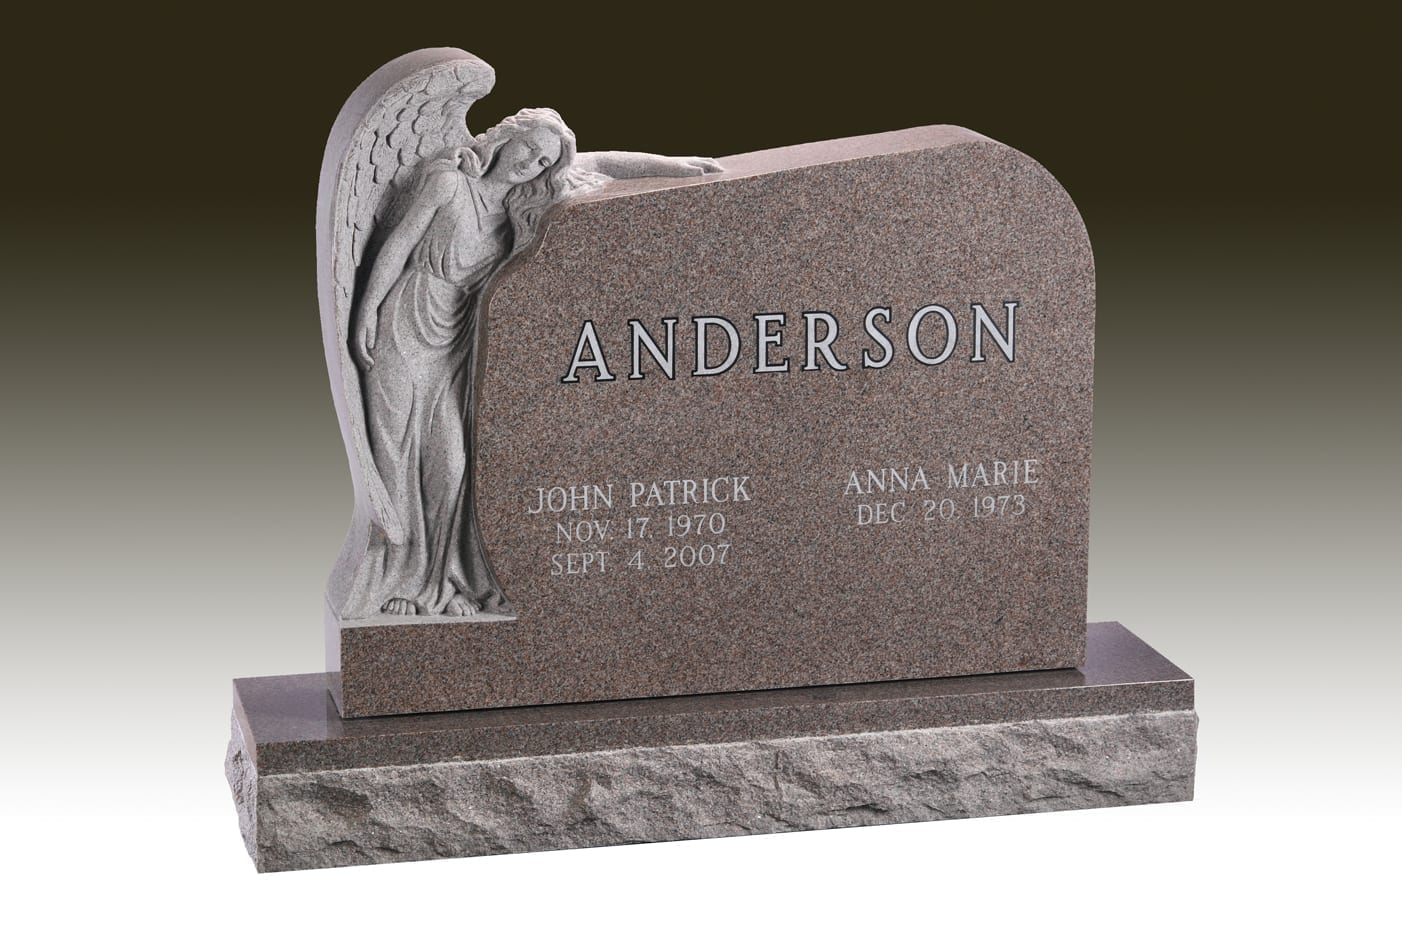 Anderson Angel Embrace Headstone